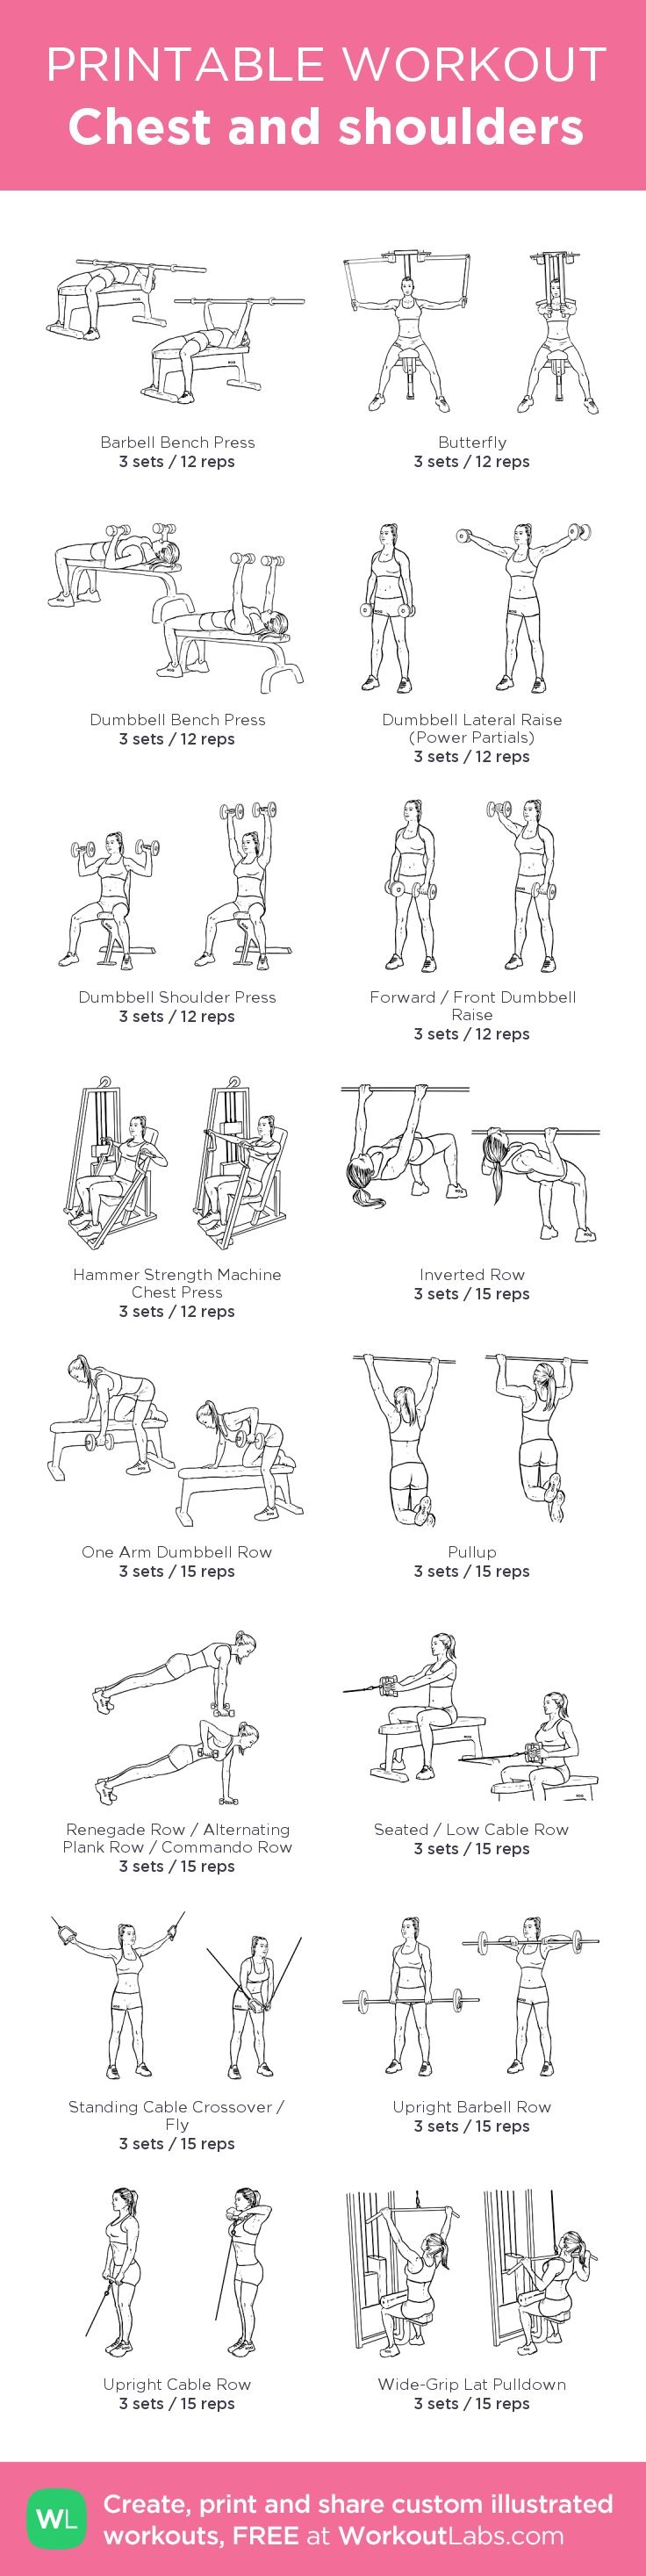 Chest and Shoulder workout | Posted By: NewHowtoLoseBellyFat.com ...